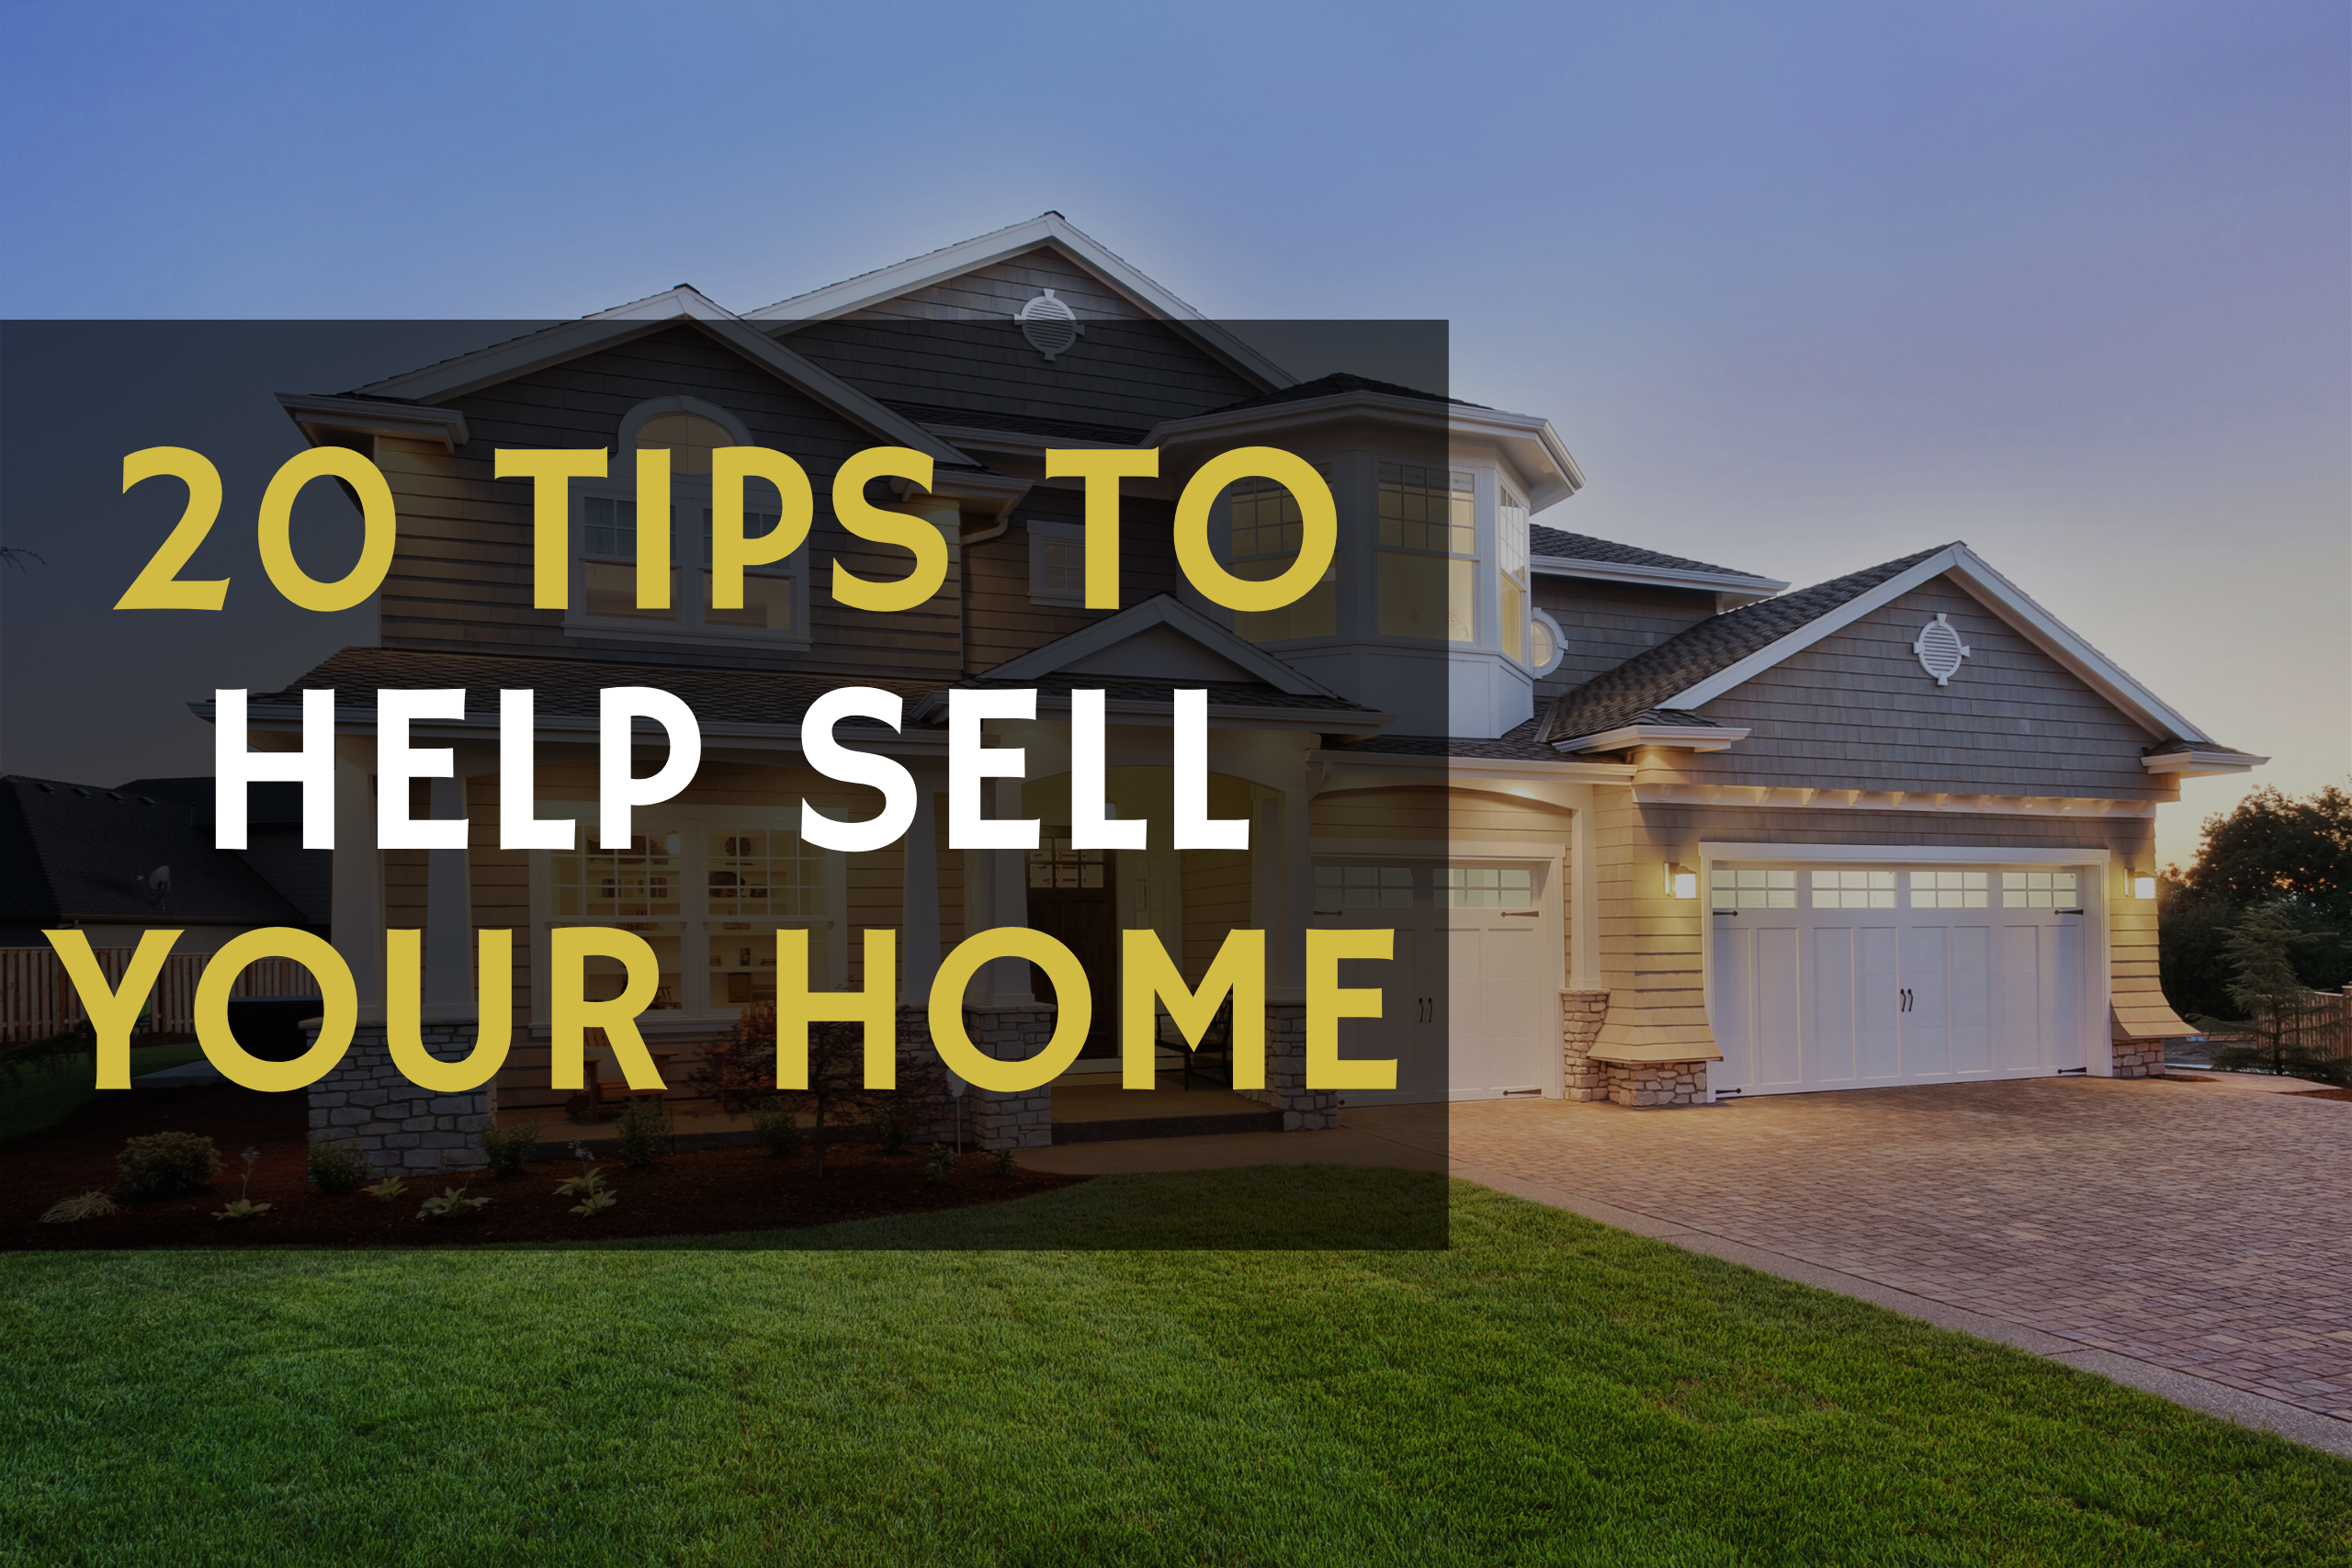 20 tips to sell your home